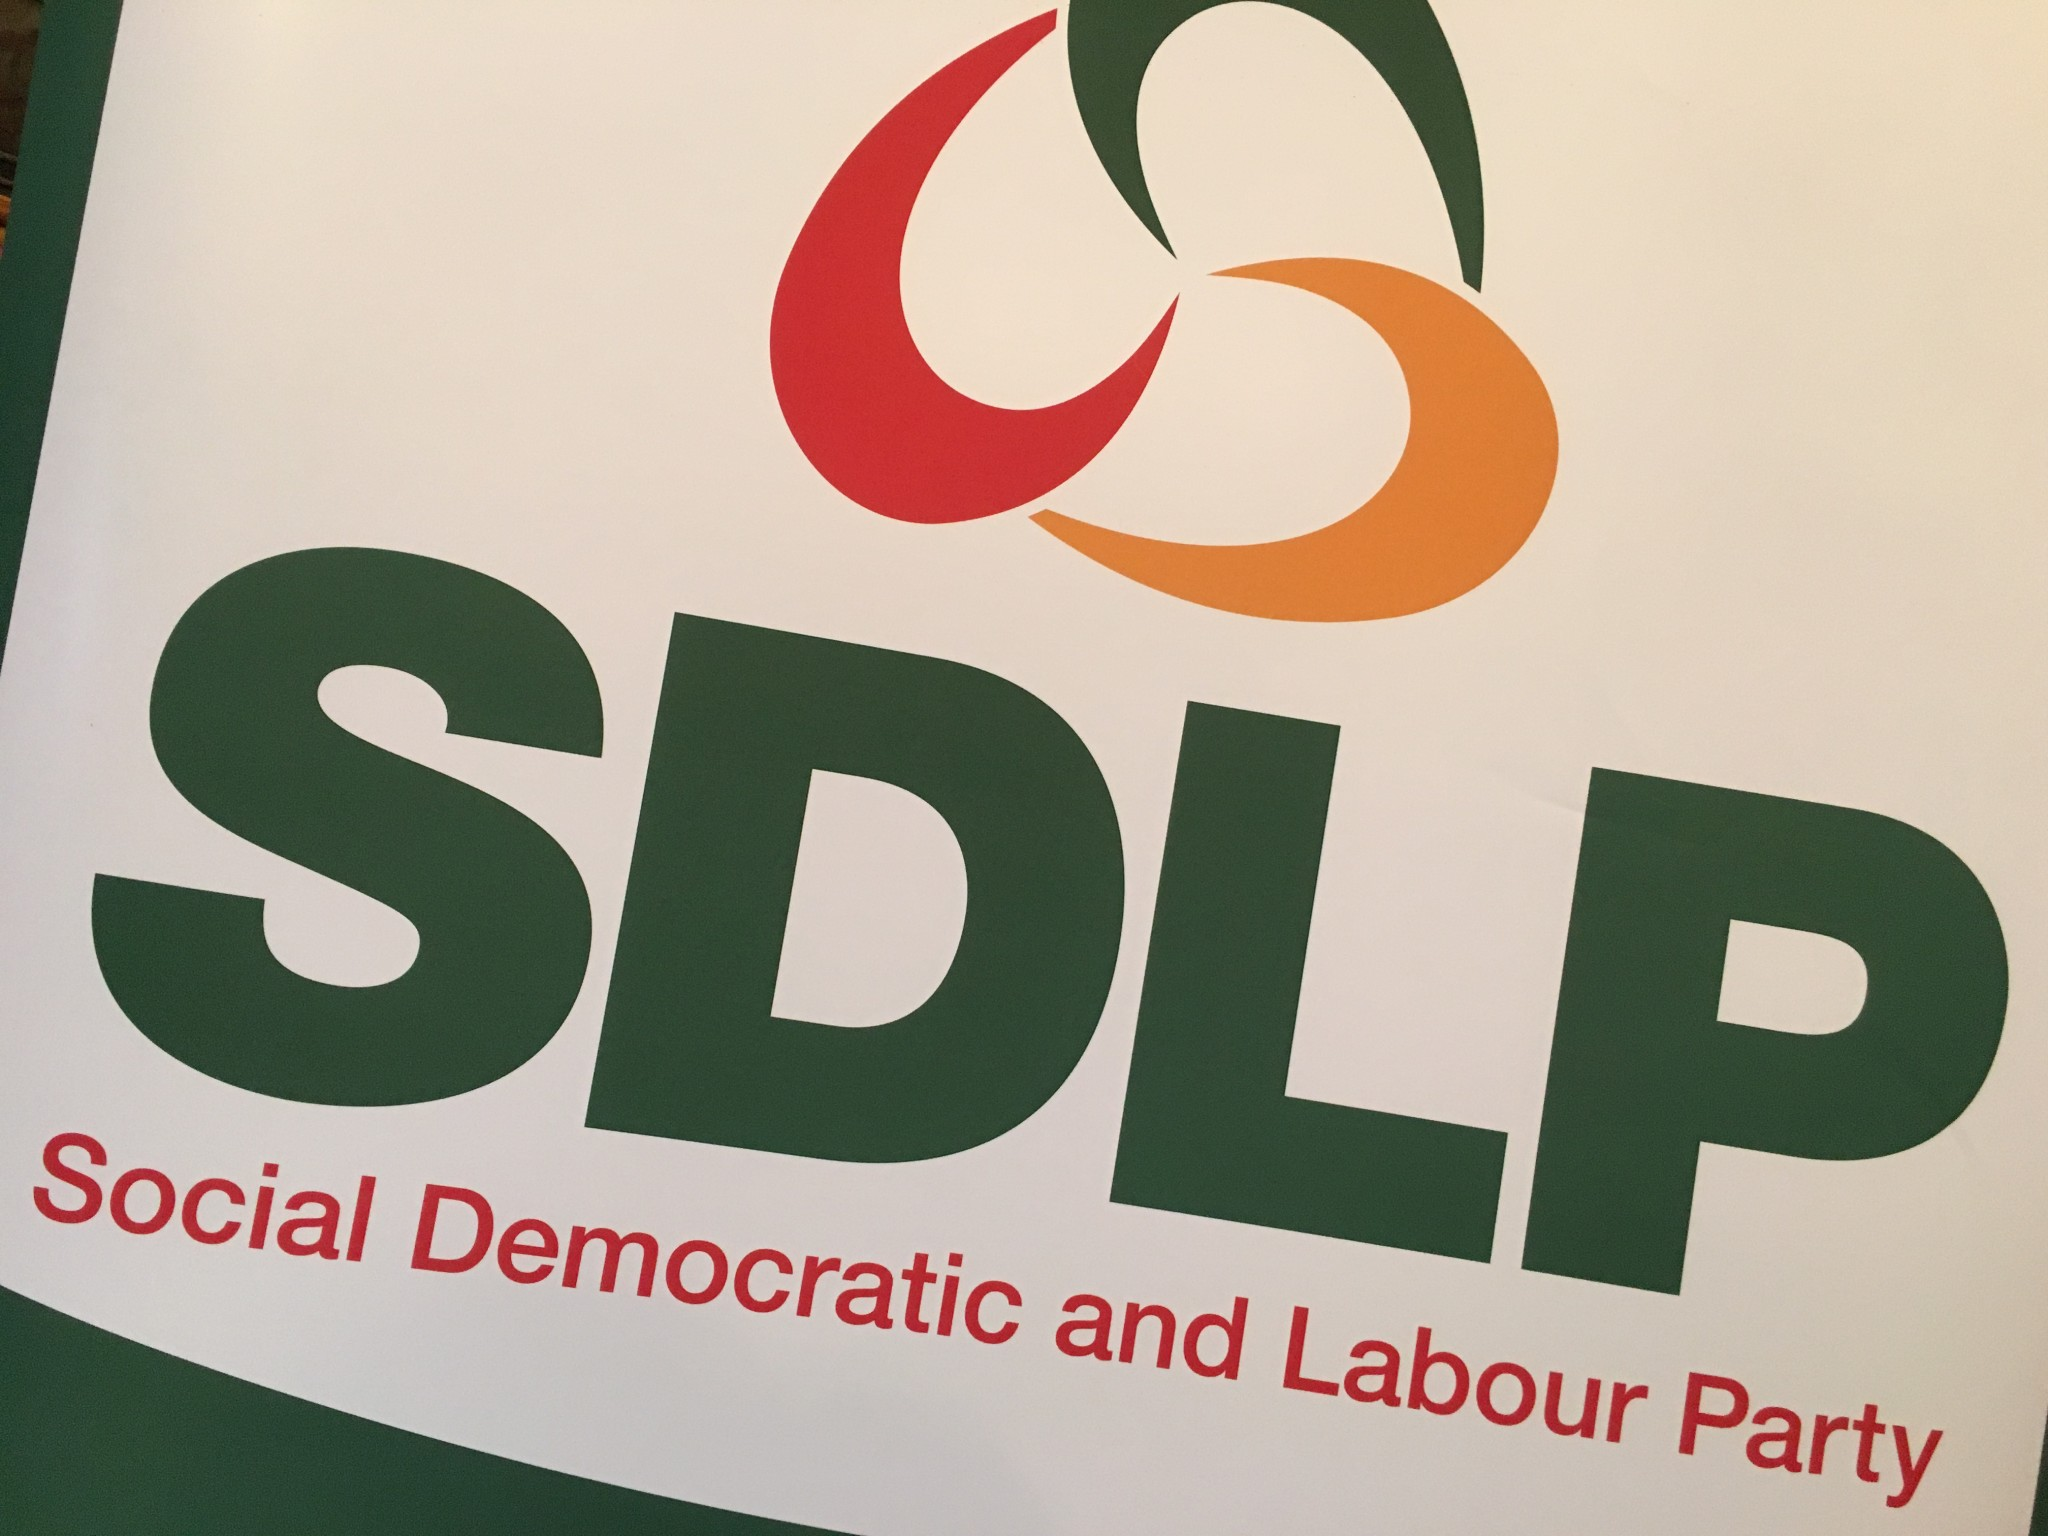 Sdlp Adopt A Conscience Policy On Abortion At Their Special